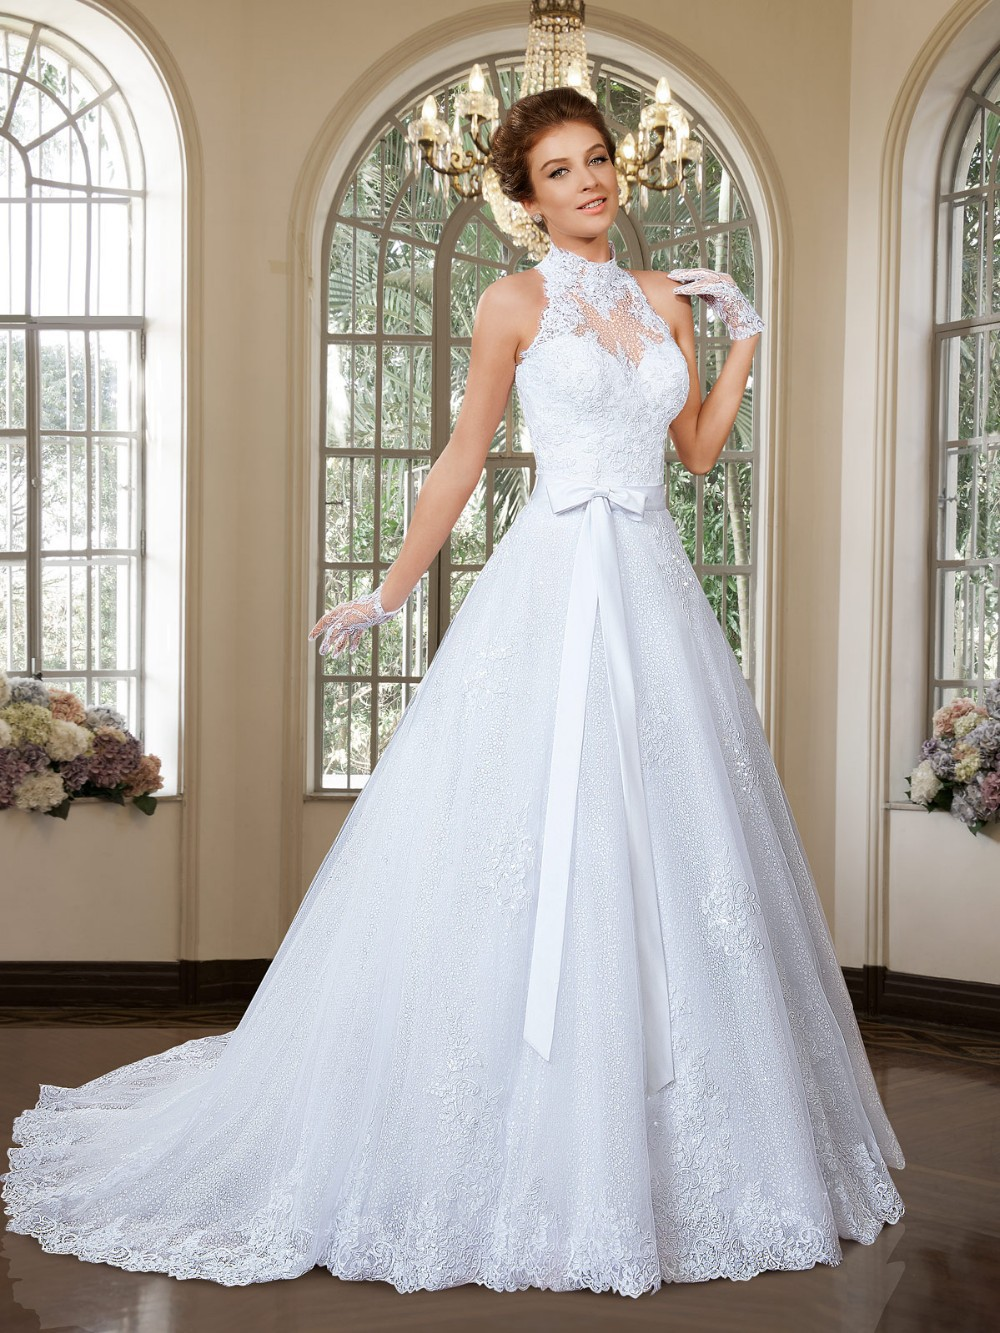 Vintage High Neck Beading Appliques Court Train Wedding Dress high neck wedding dress